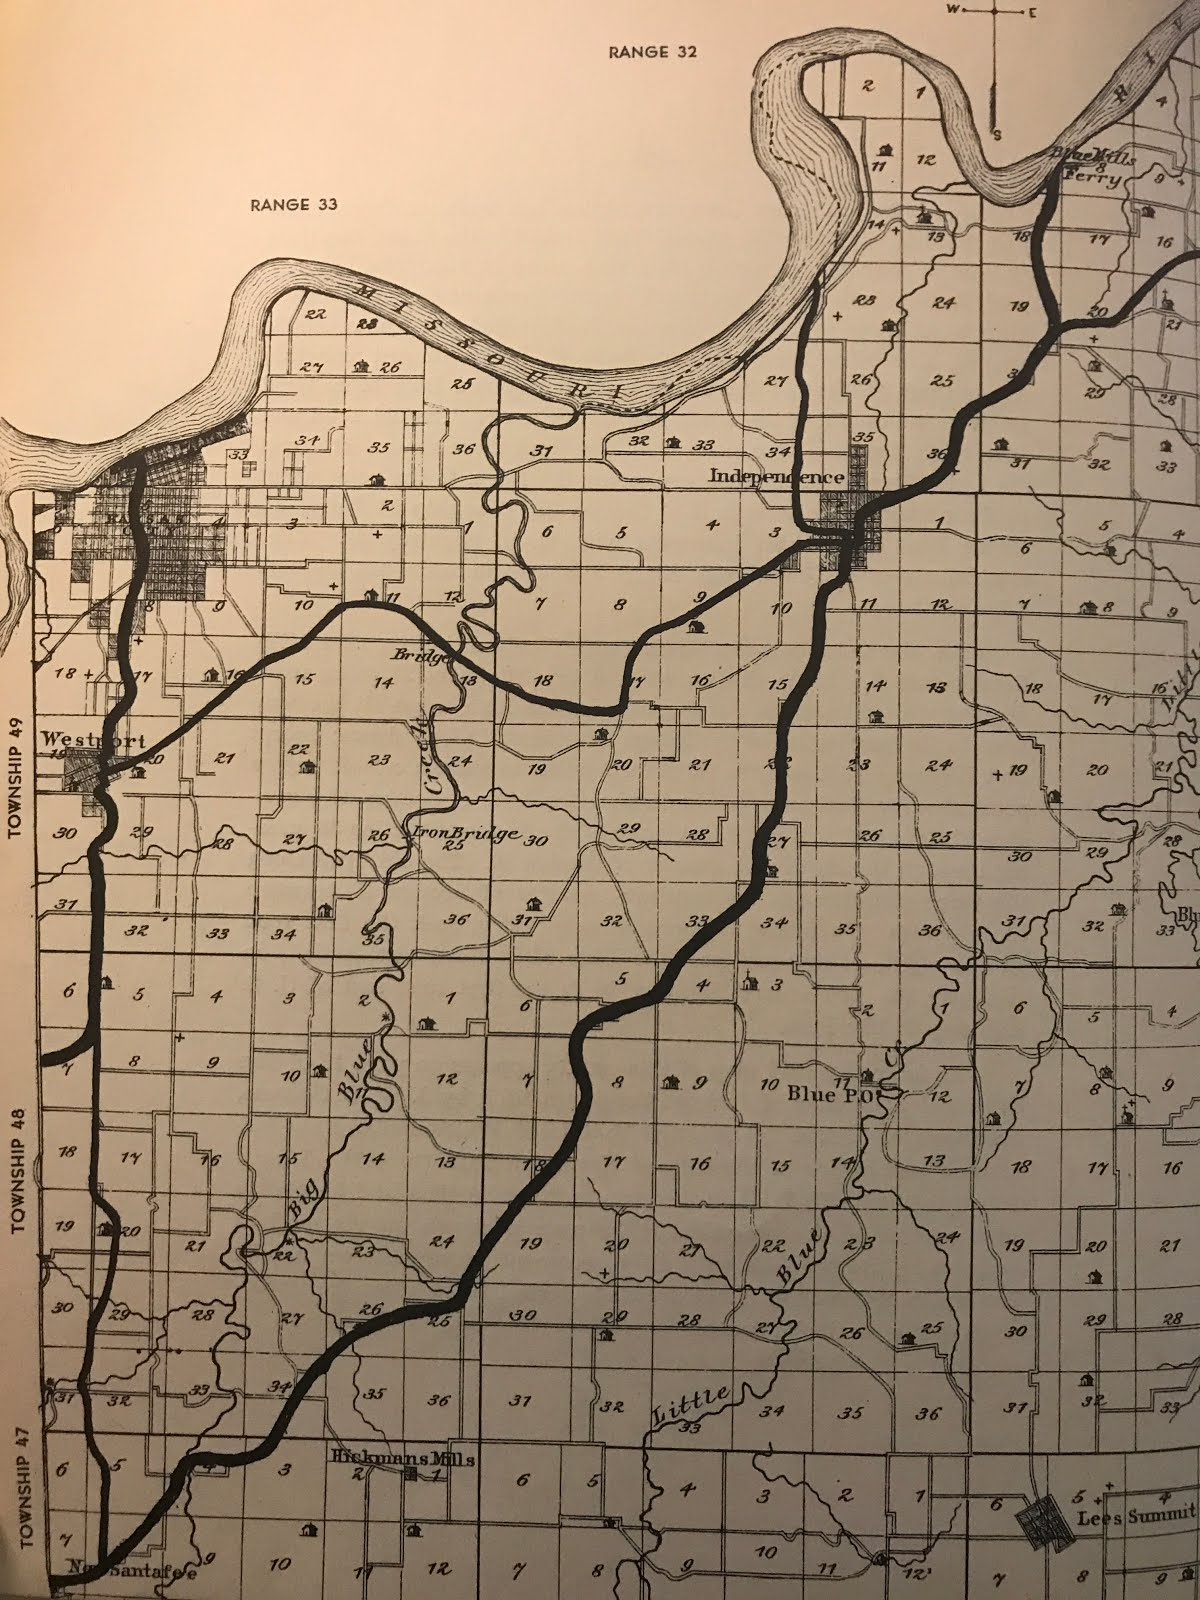 1877 map of jackson county with a hand drawn overlay of the santa fe trail routes drawn in 1951 by dean earl wood